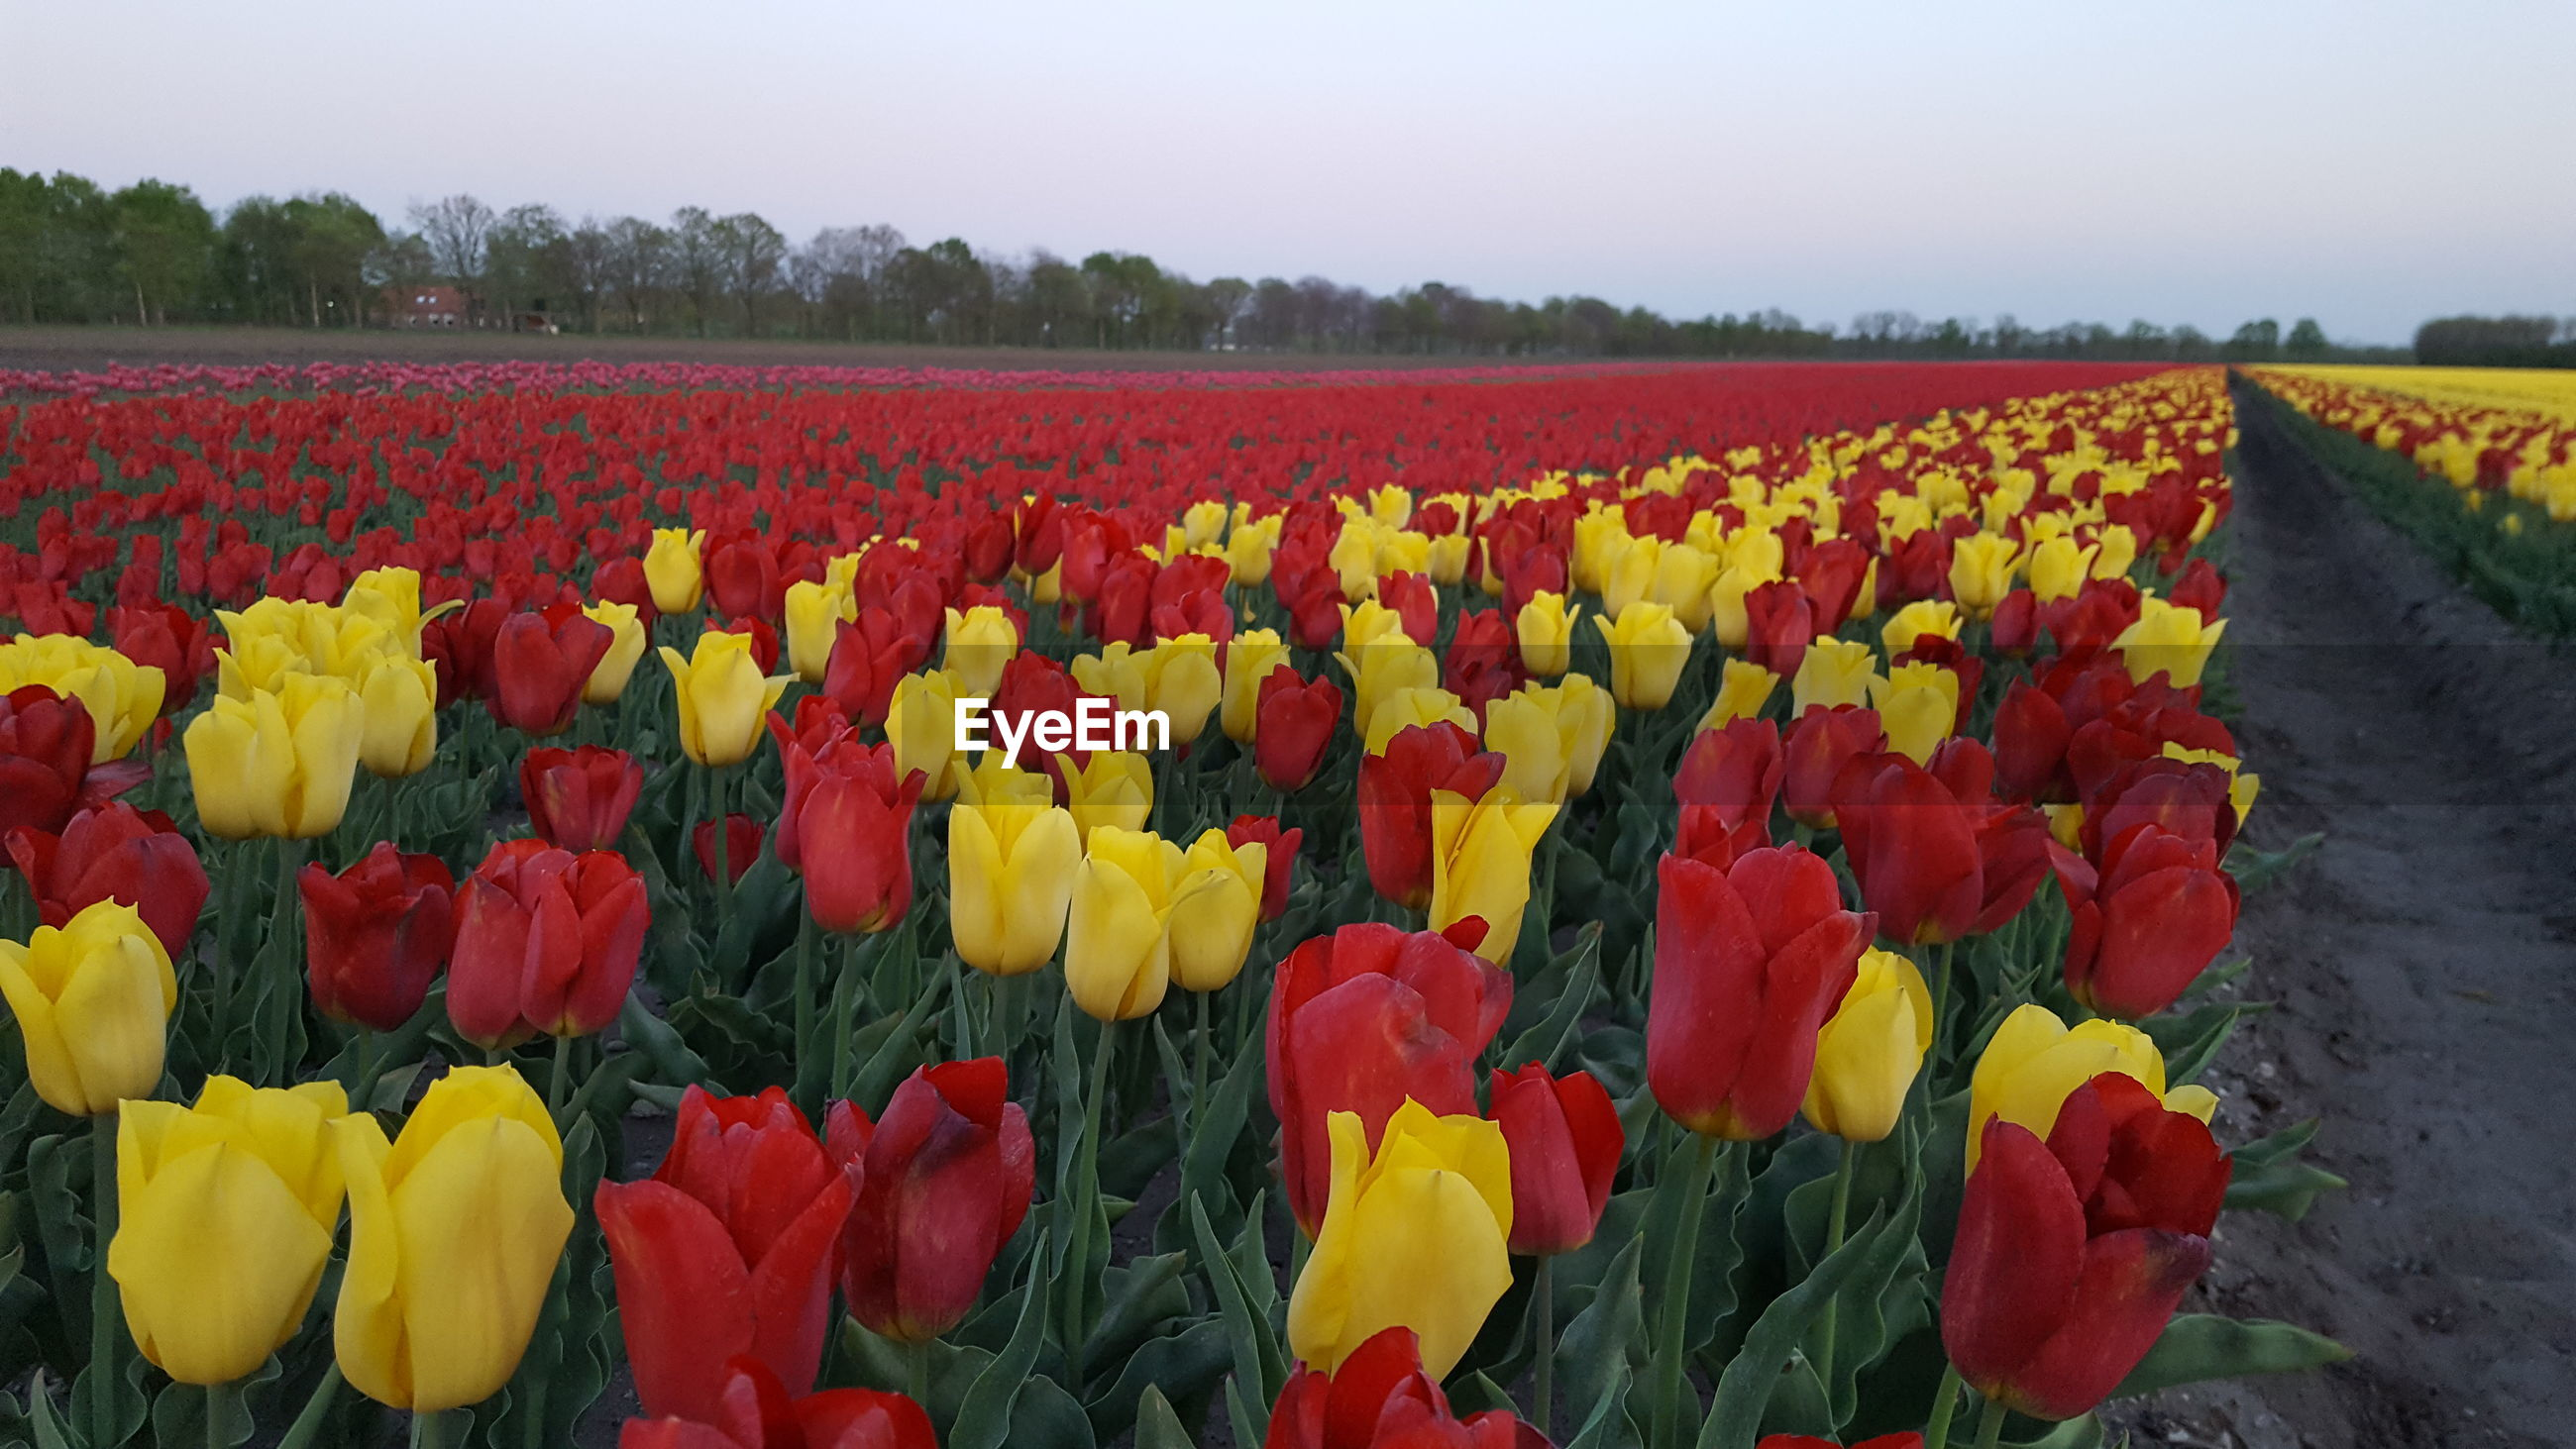 SCENIC VIEW OF RED TULIPS IN FIELD